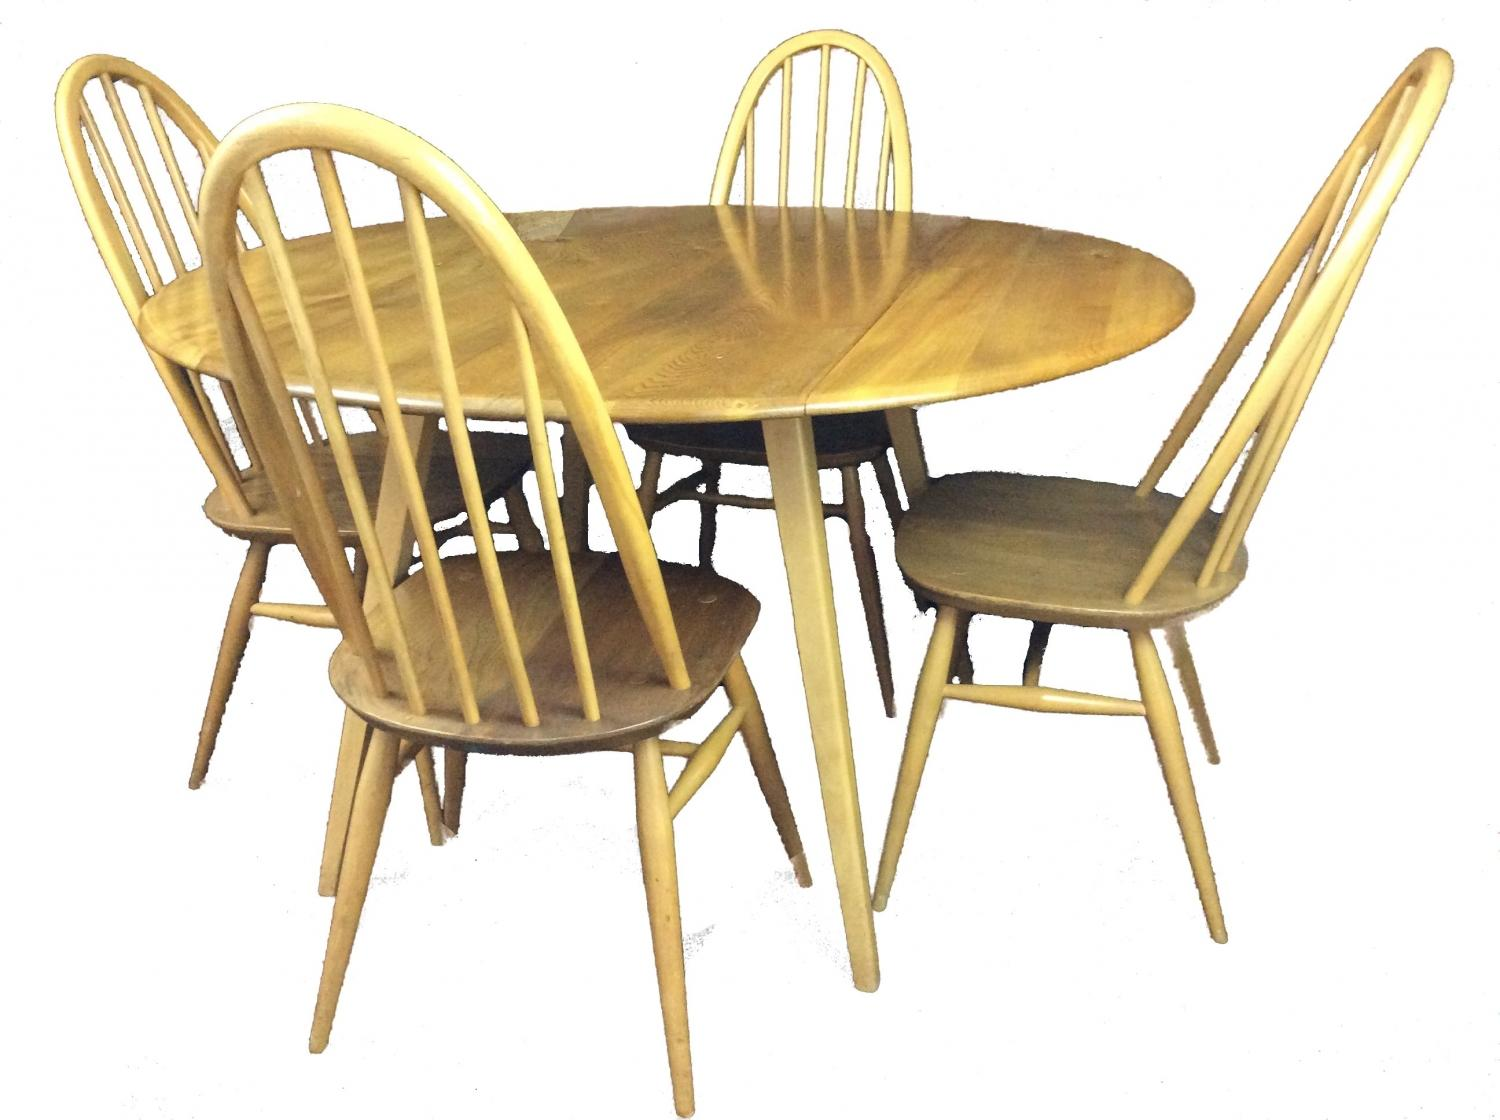 Ercol Dropleaf Dining Table and Chairs